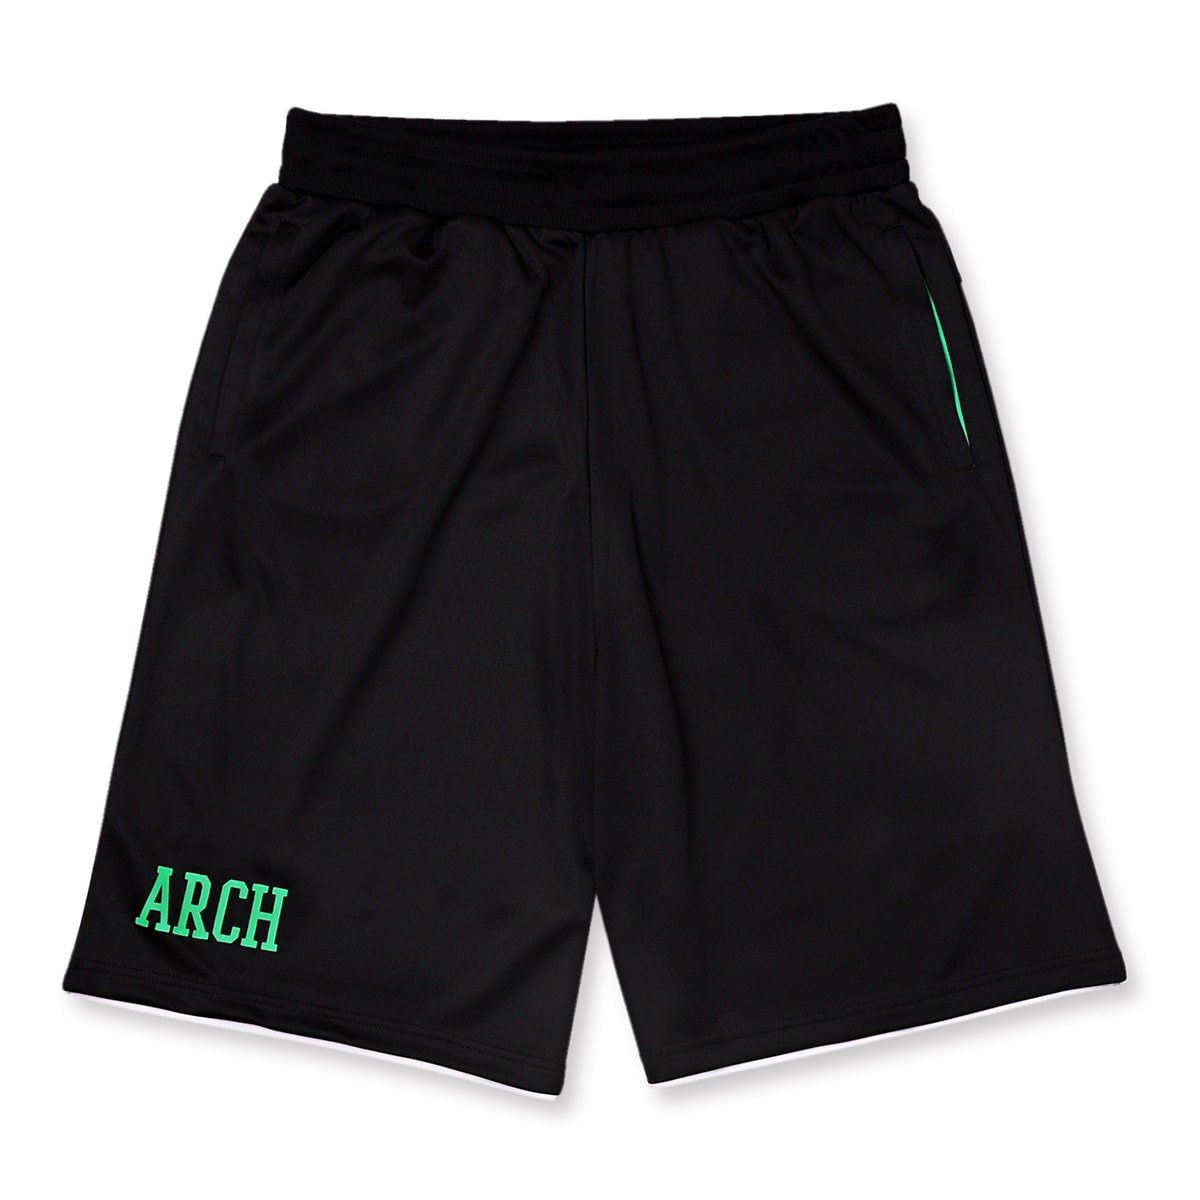 bi-color shorts【black/white】